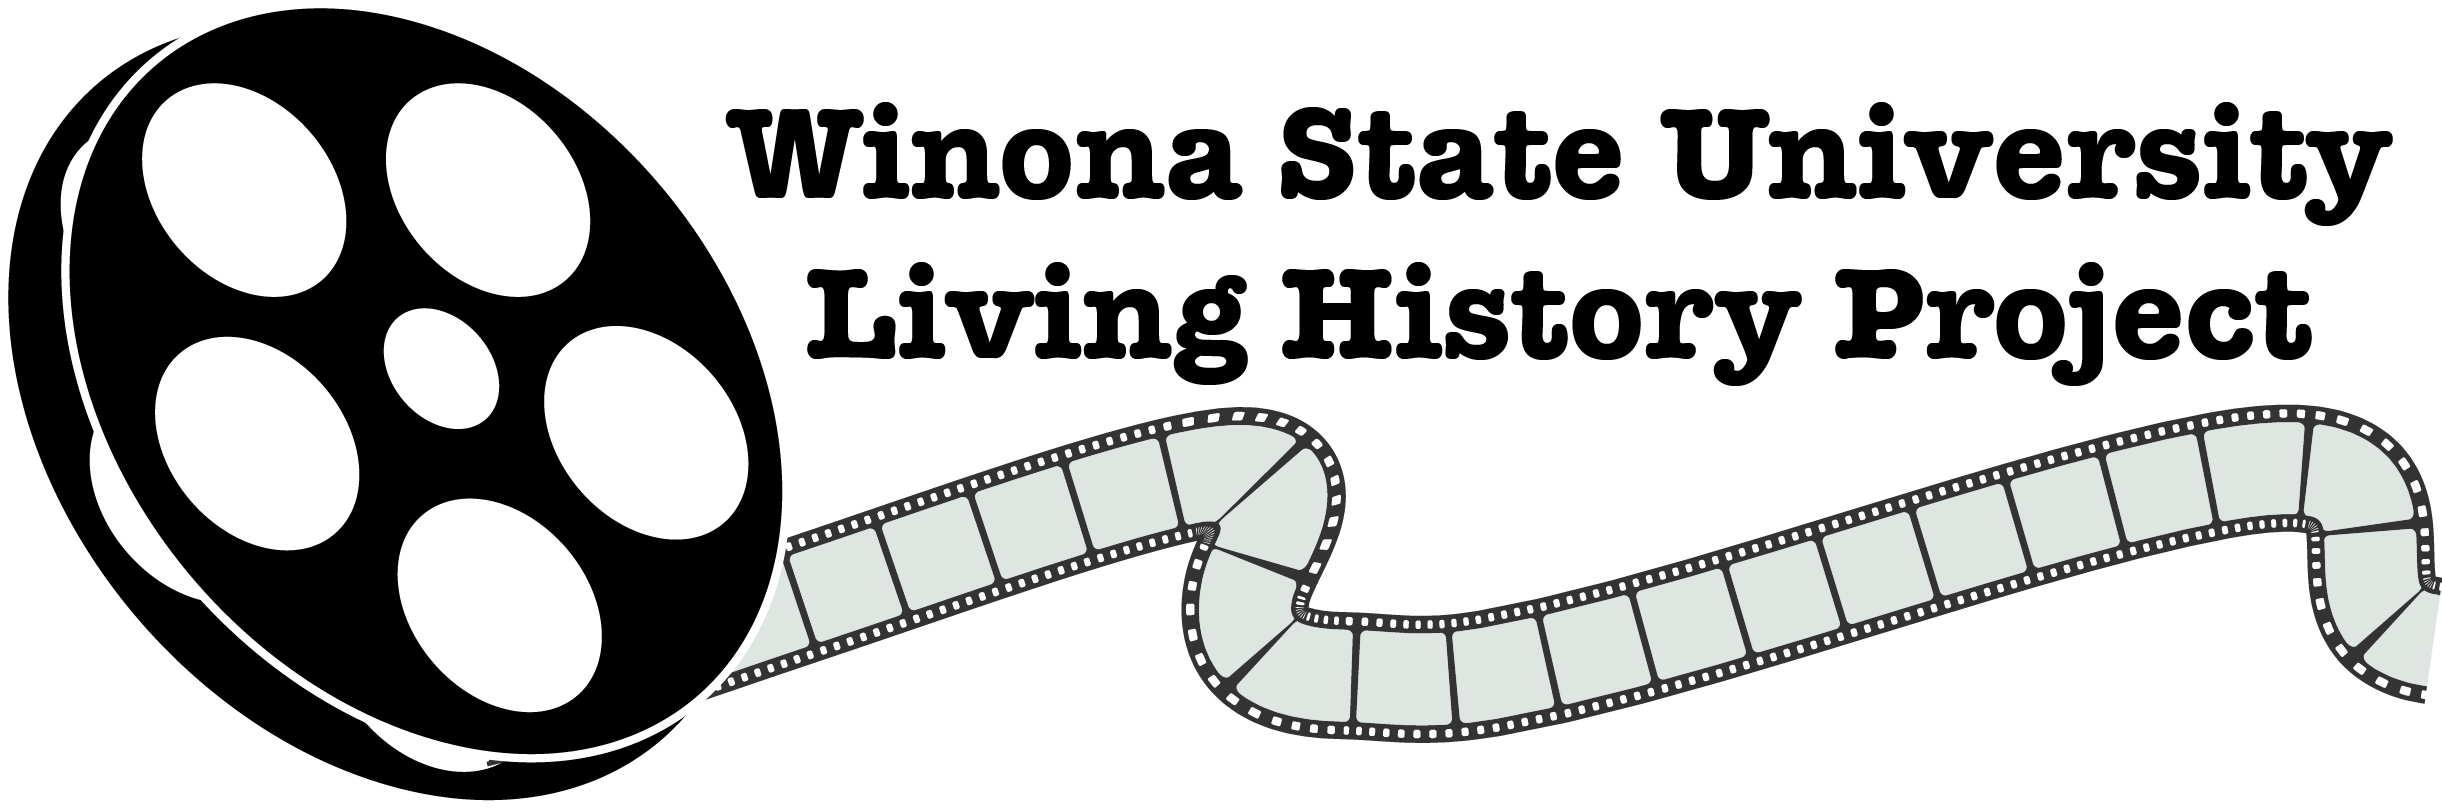 Living History Project: WSU Retiree Center